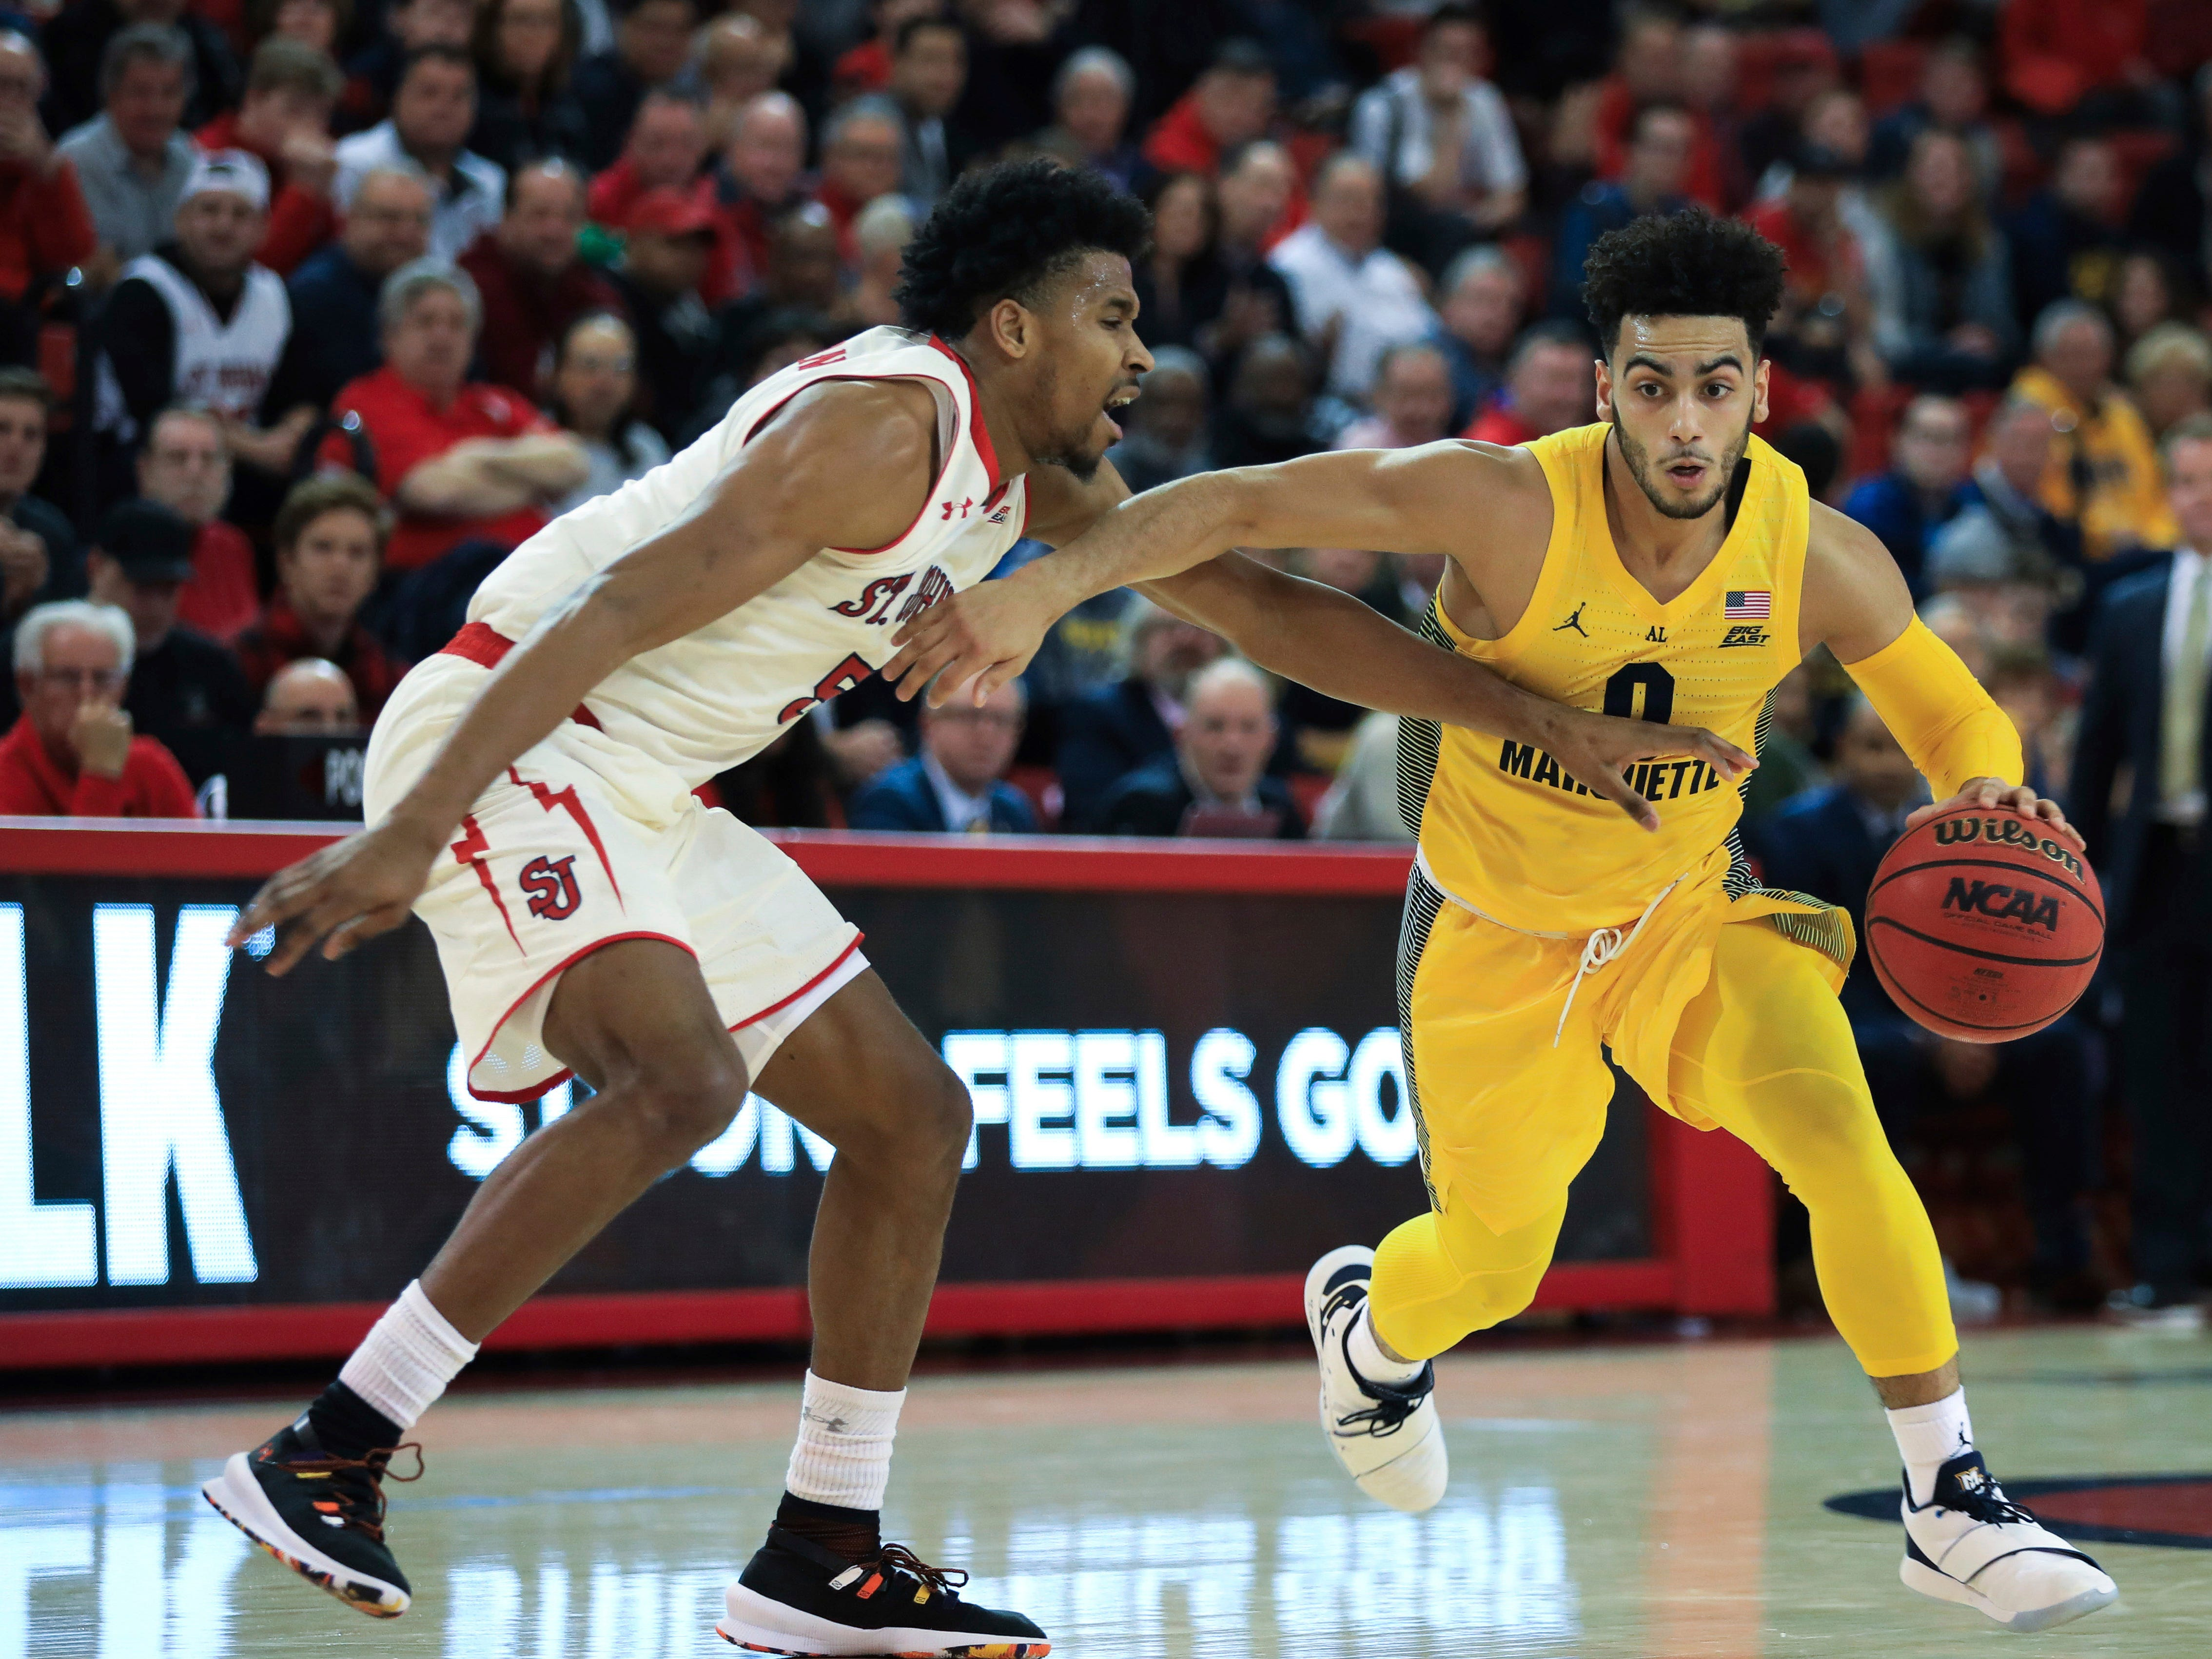 Marquette guard Markus Howard drives past St. John's guard Justin Simon during the first half of an NCAA college basketball game Tuesday, Jan. 1, 2019, in New York. (AP Photo/Kevin Hagen). ORG XMIT: NYKH103